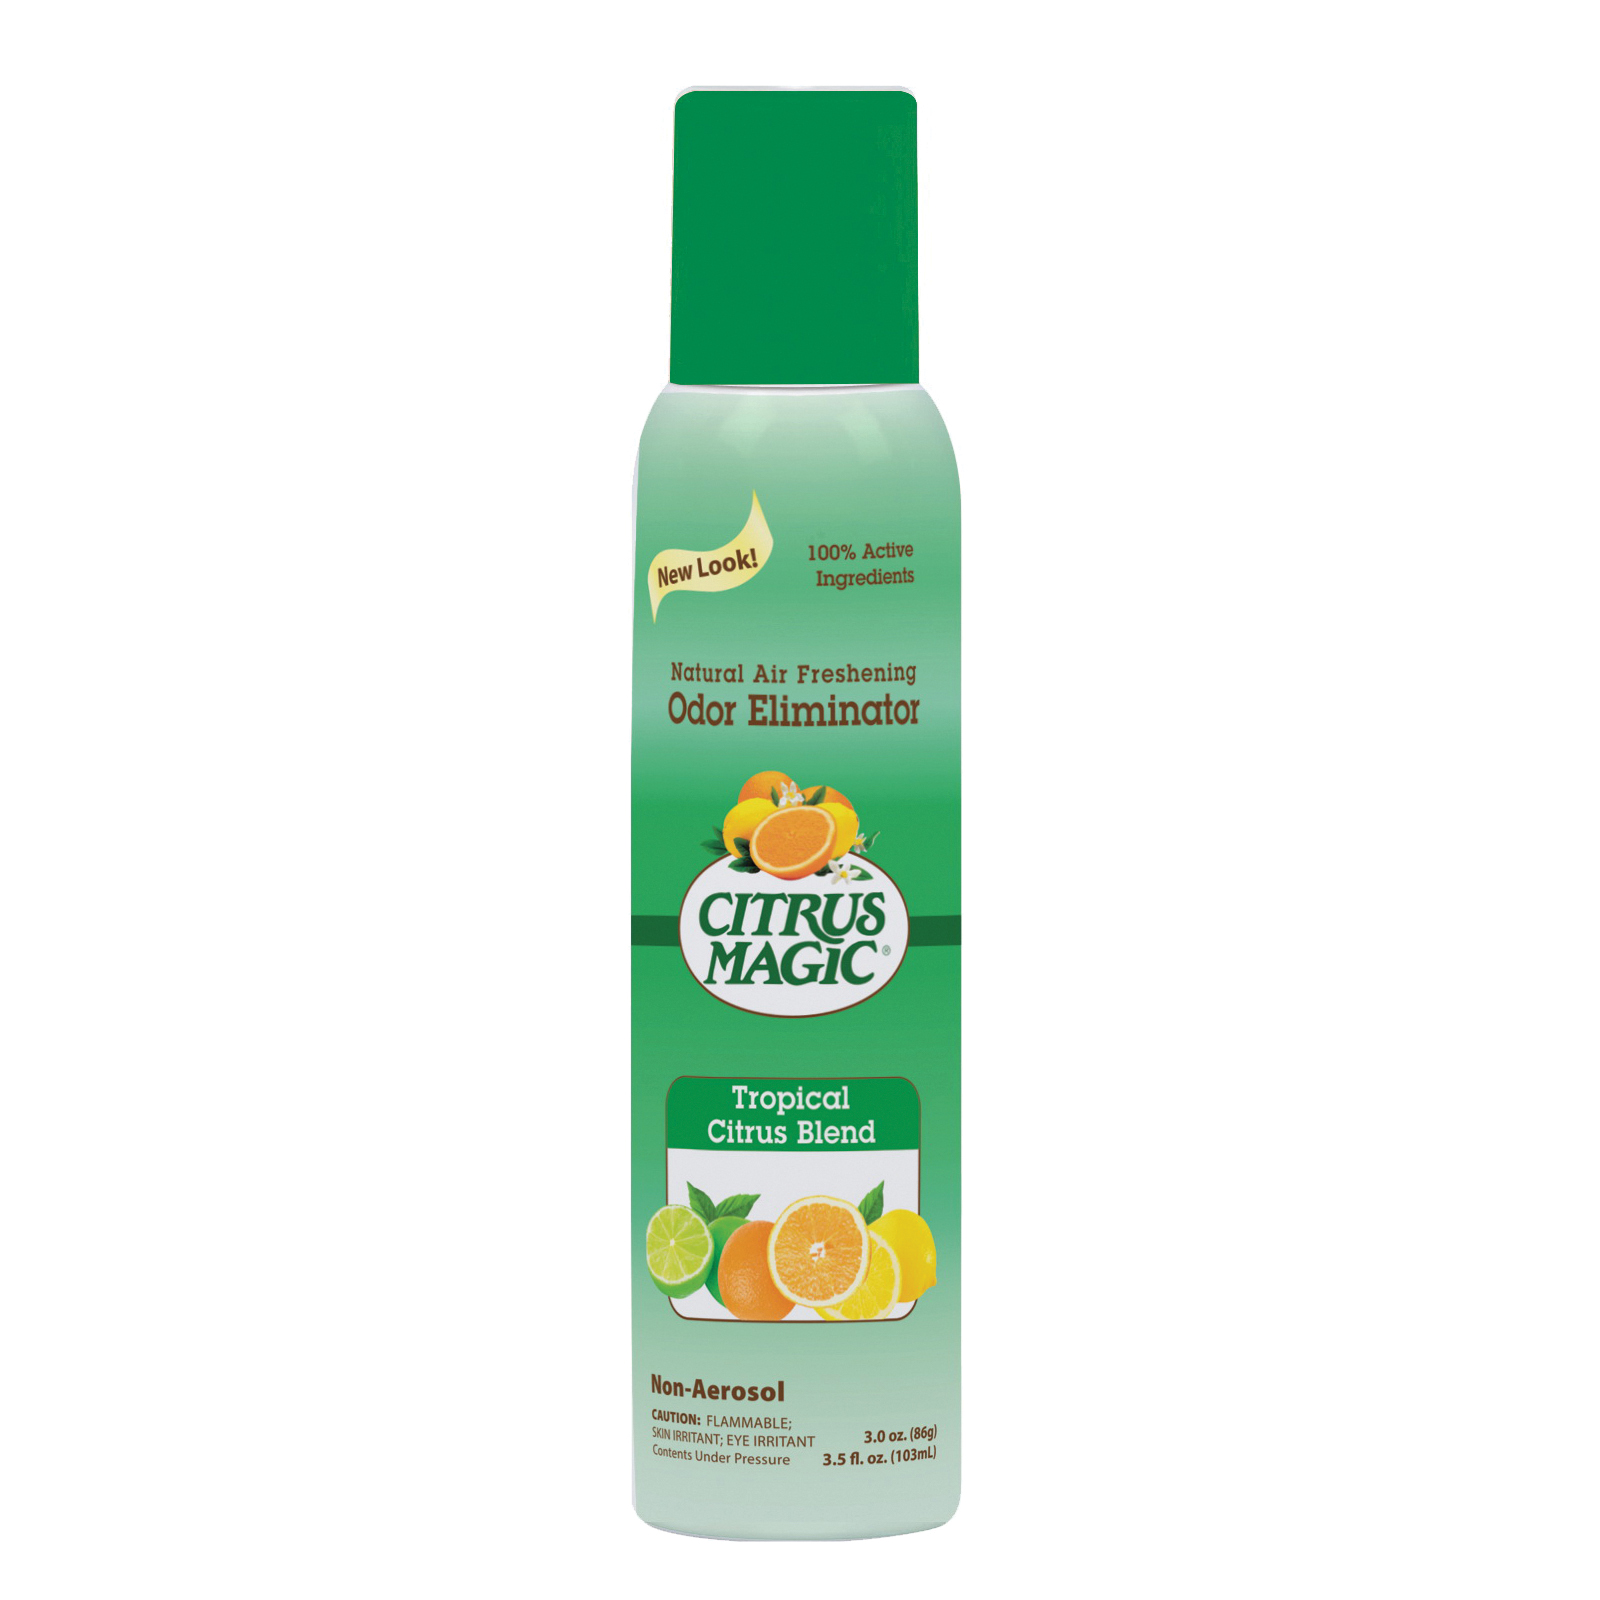 Picture of Citrus Magic 612172867 Air Freshener, 3 oz Package, Bottle, Tropical Citrus Blend